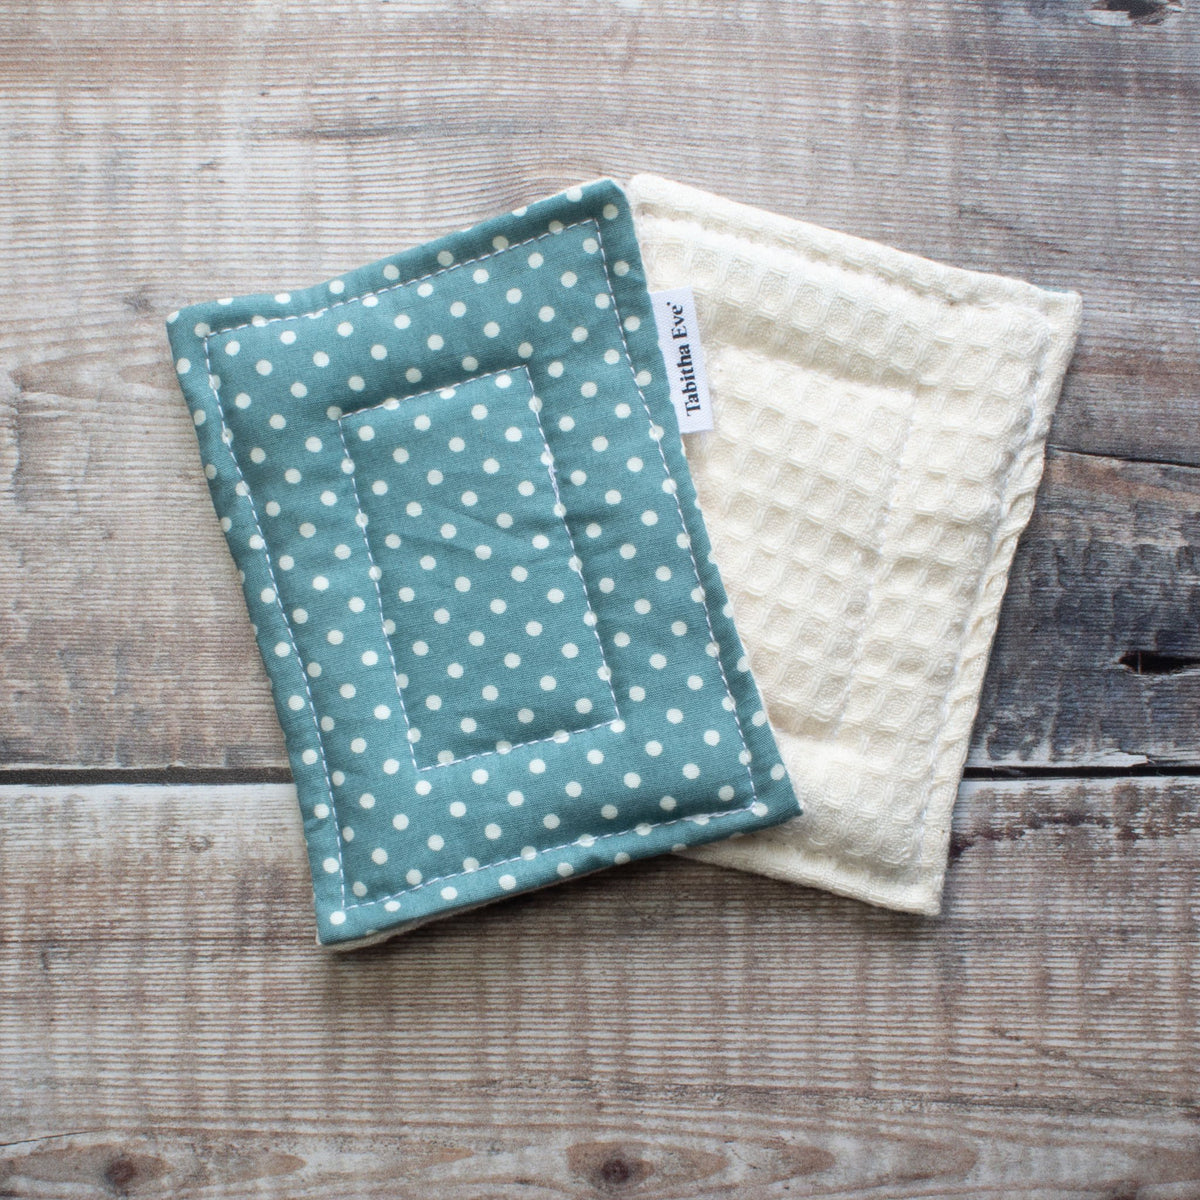 None Sponge - 2 Pack - Teal & White Dot | Washing Up Sponges - The Naughty Shrew